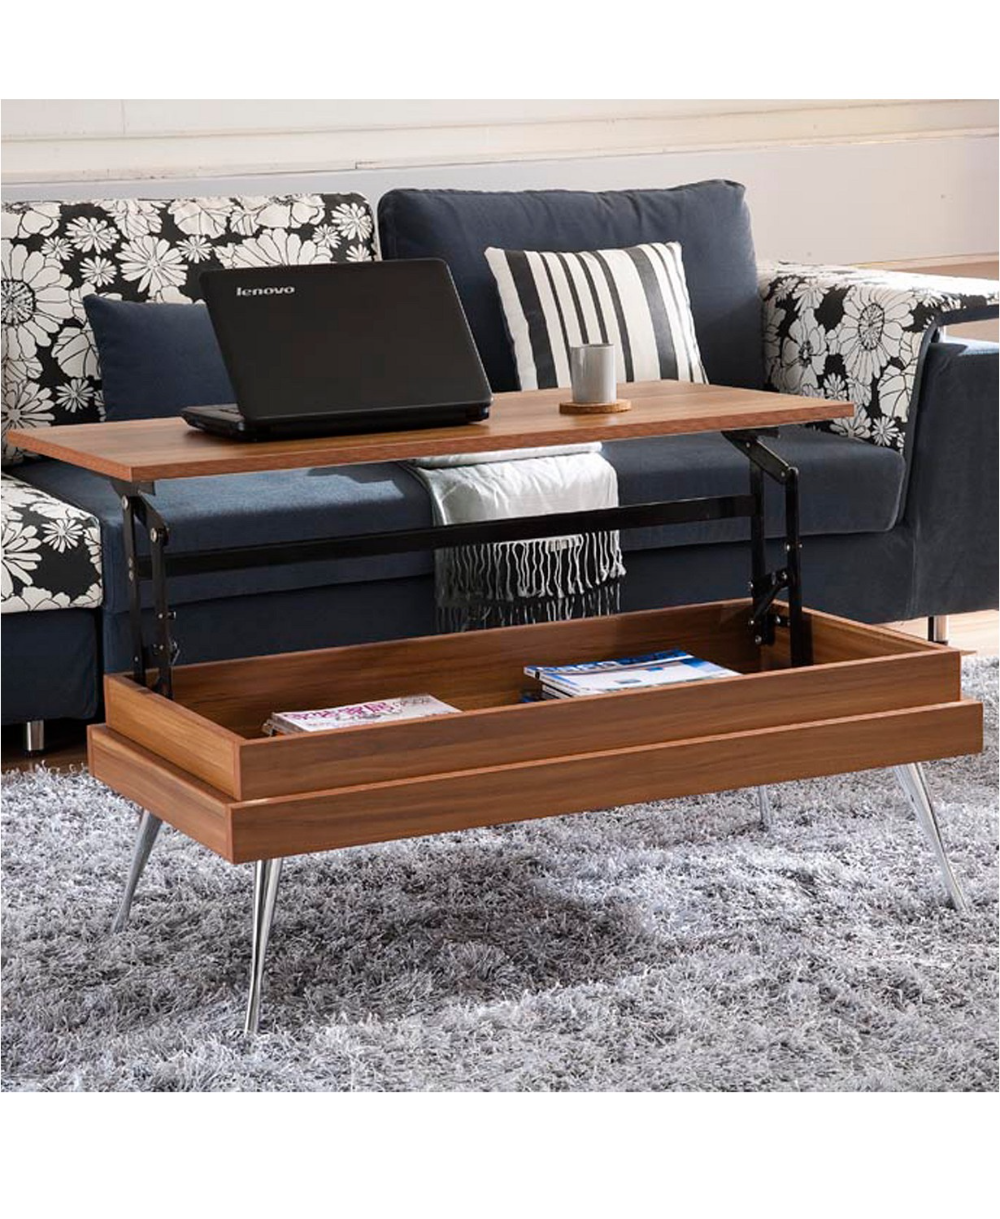 Mix Koryo Lift Top Coffee Table Reviews Furniture Macy S In 2021 Coffee Table With Storage Furniture Convertible Coffee Table [ 1219 x 1000 Pixel ]